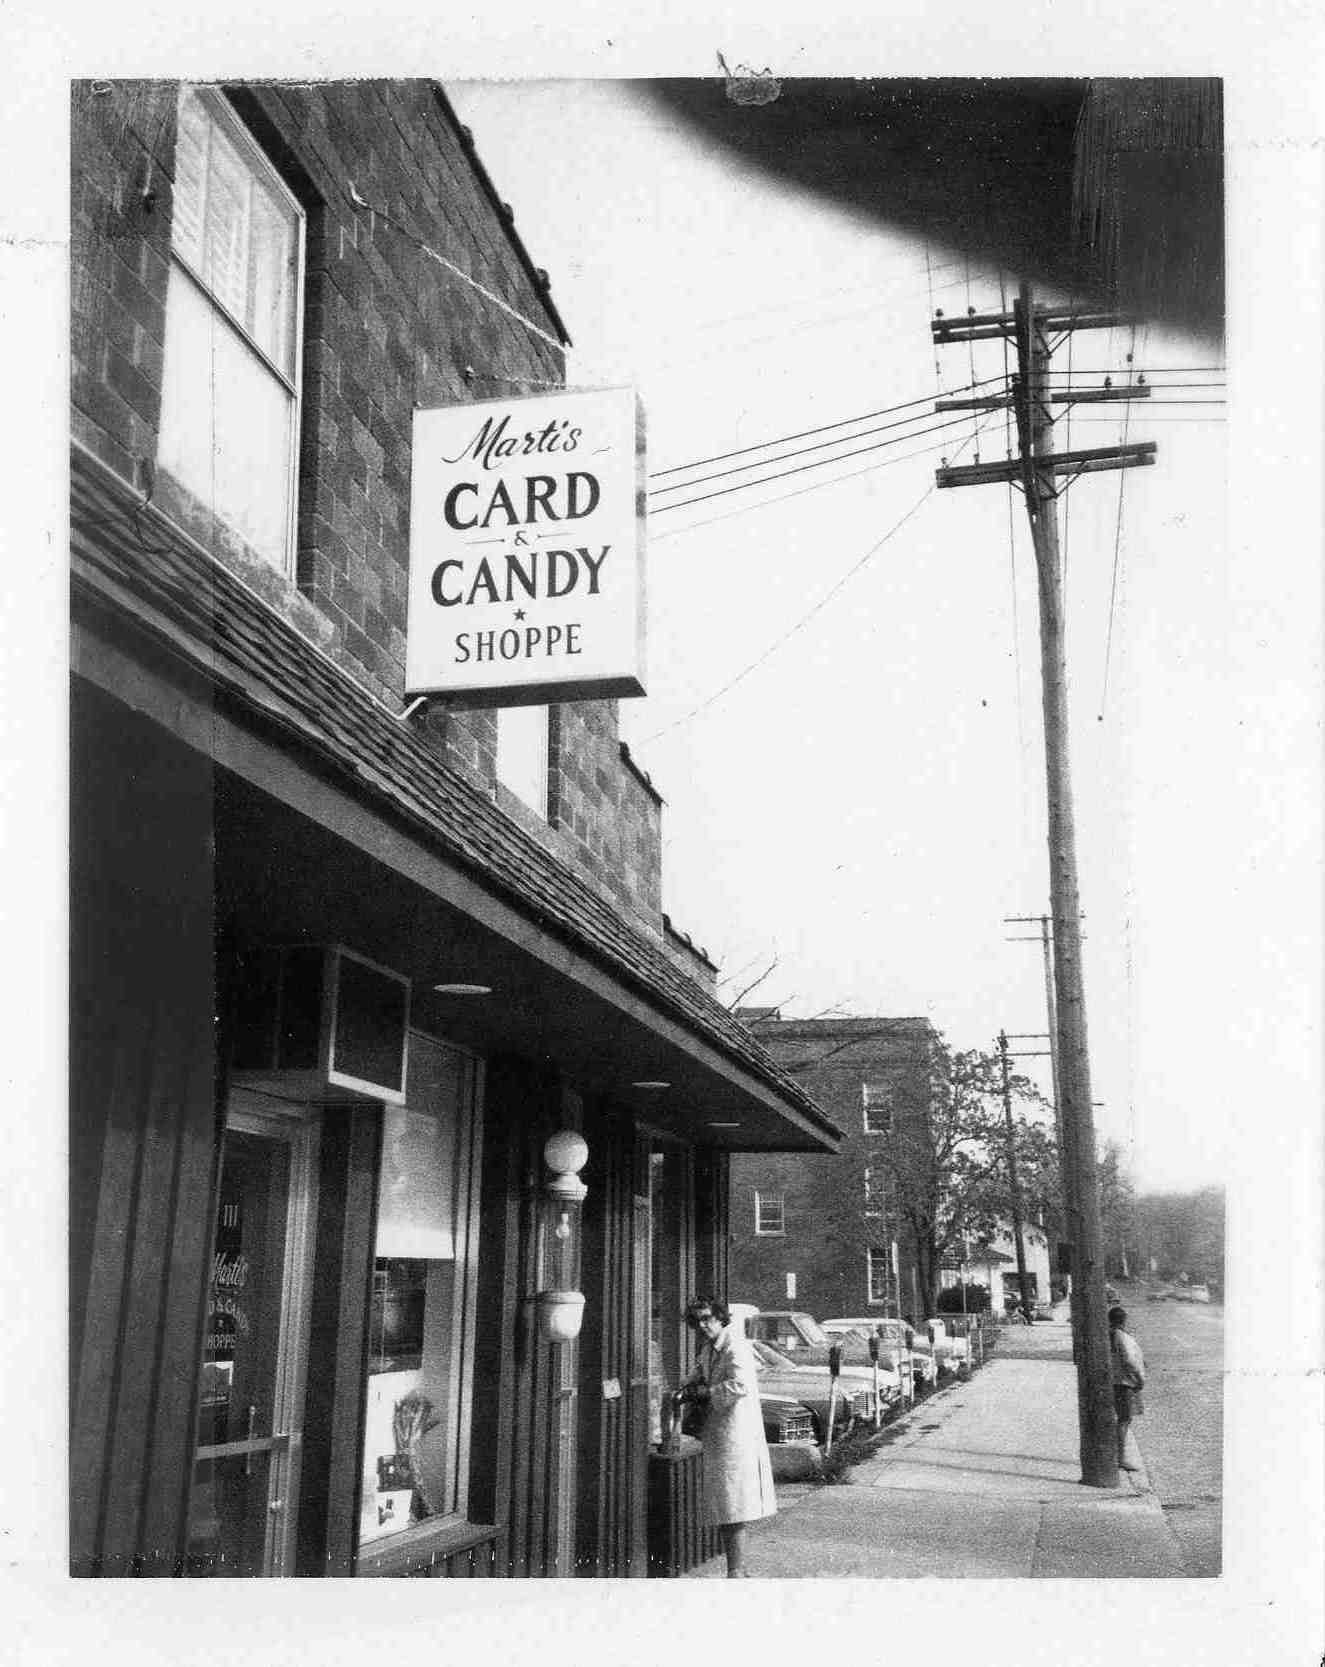 Marti's Card and Candy Shoppe image